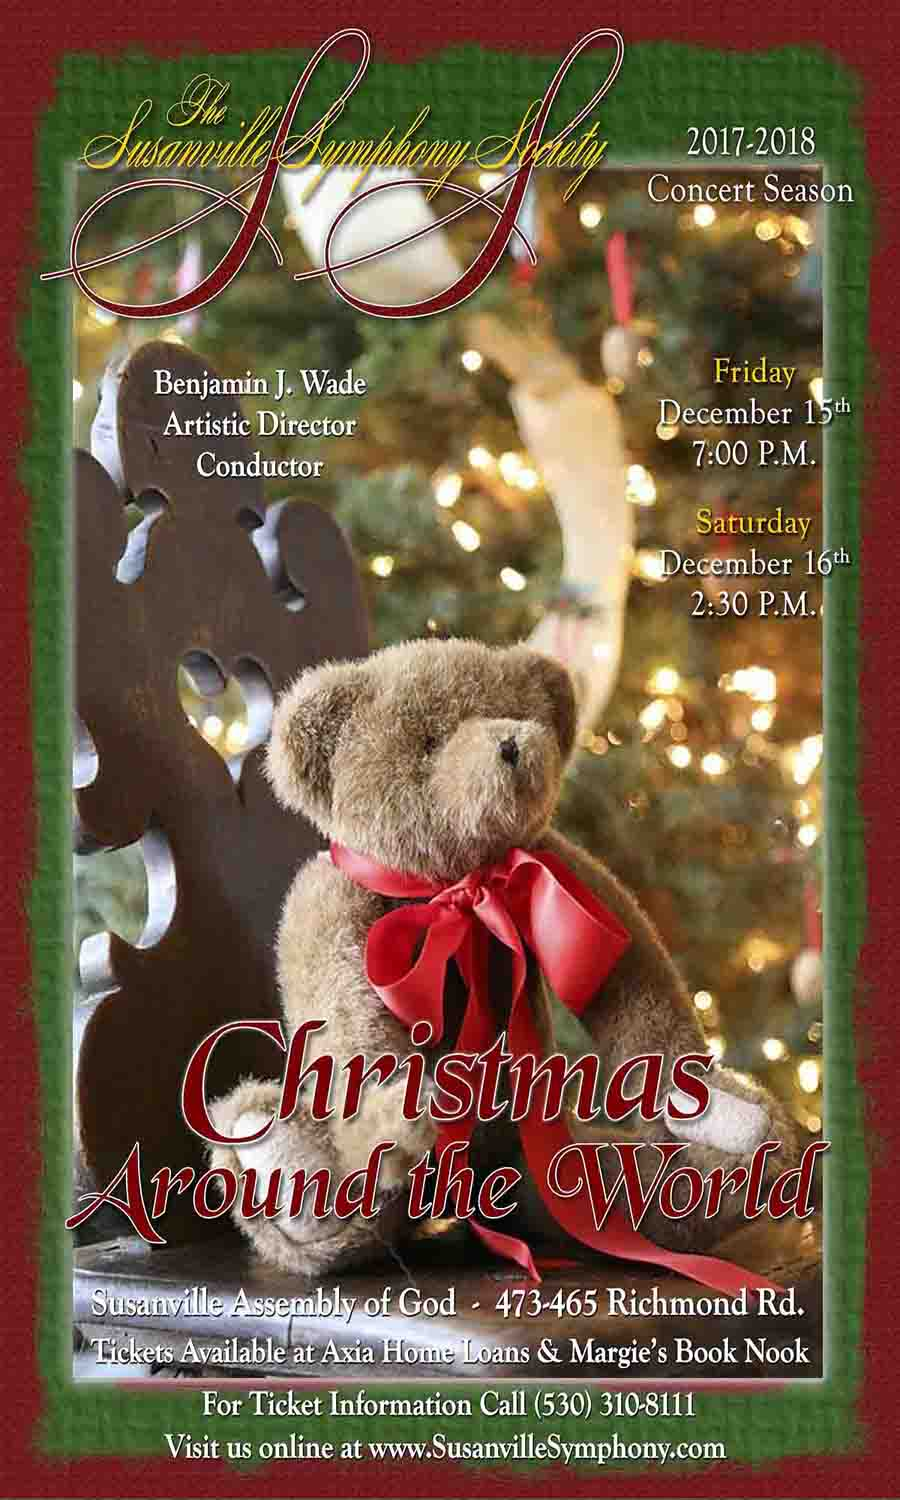 Susanville Symphony Christmas Around the World